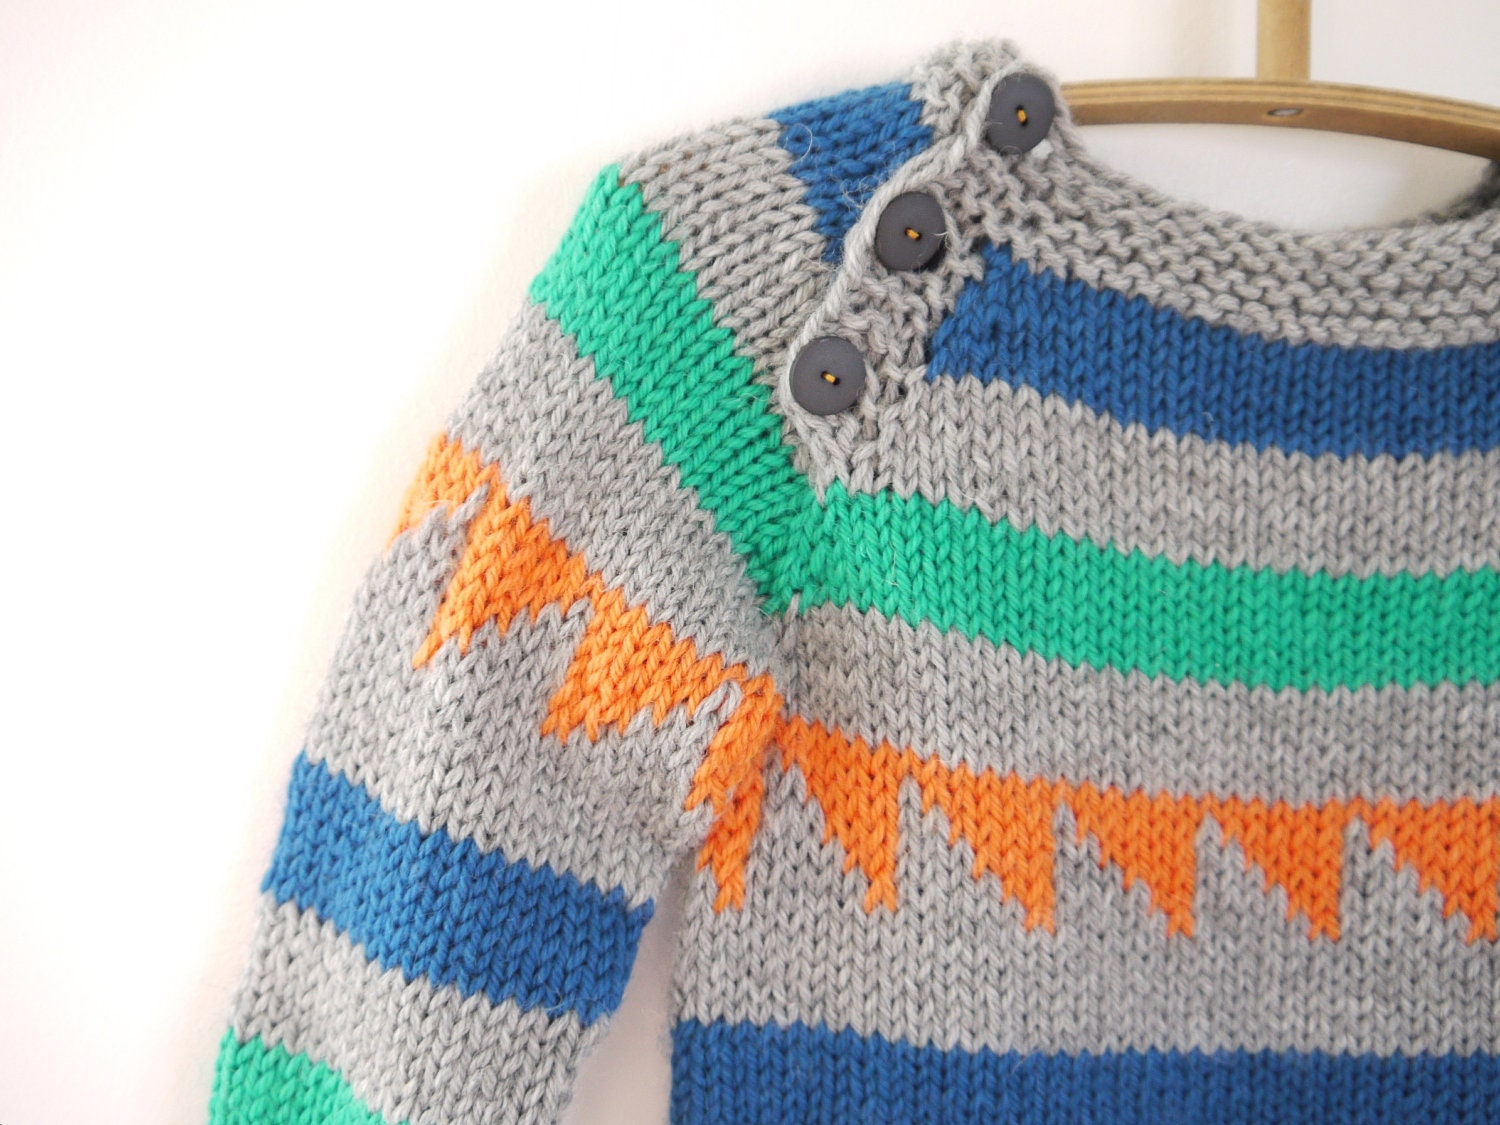 Knitting Kids Sweater : Boys knitted sweater triangle chunky pullover fits